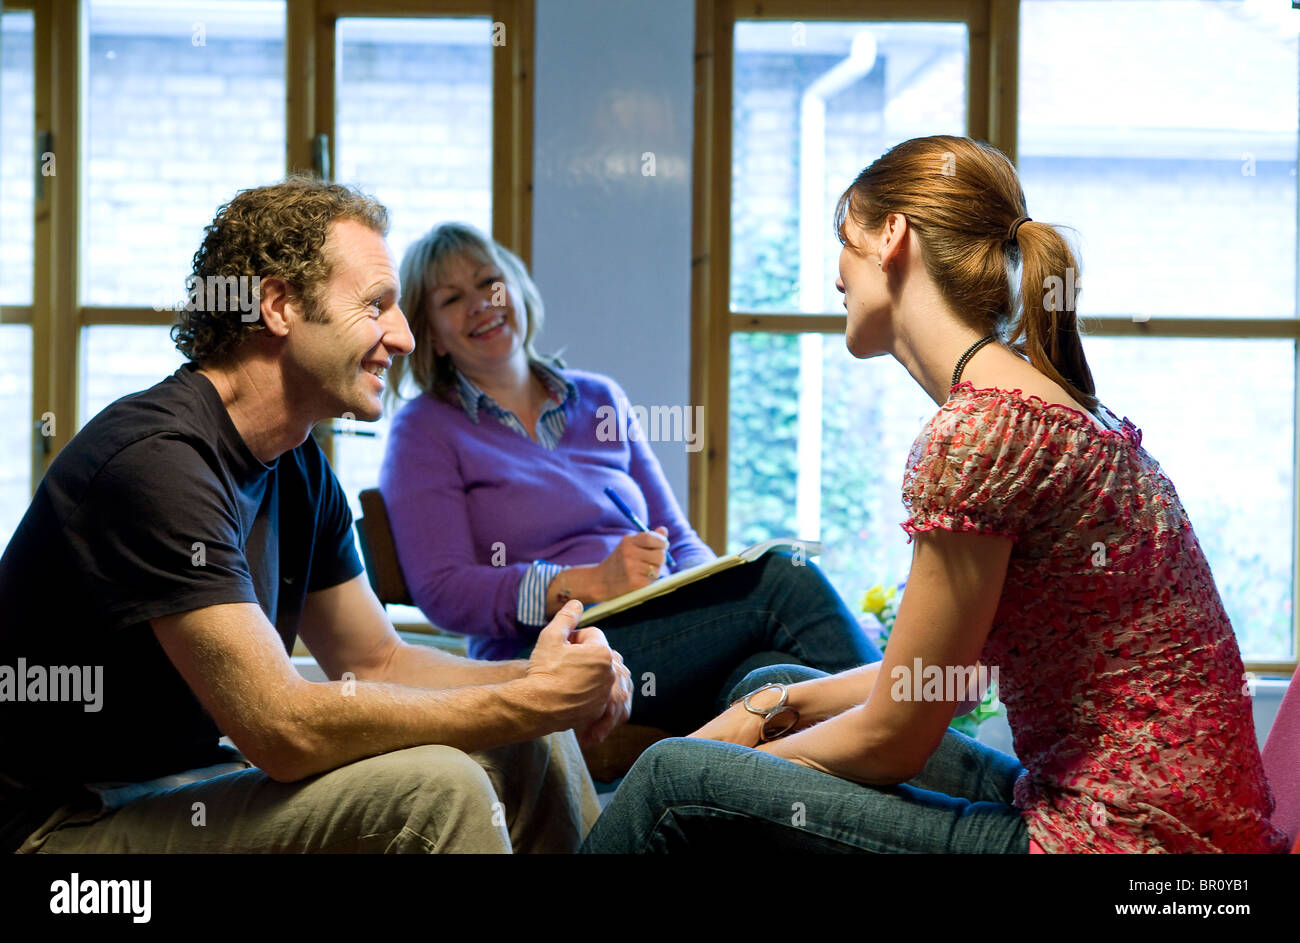 Couple having marriage guidance counselling - Stock Image